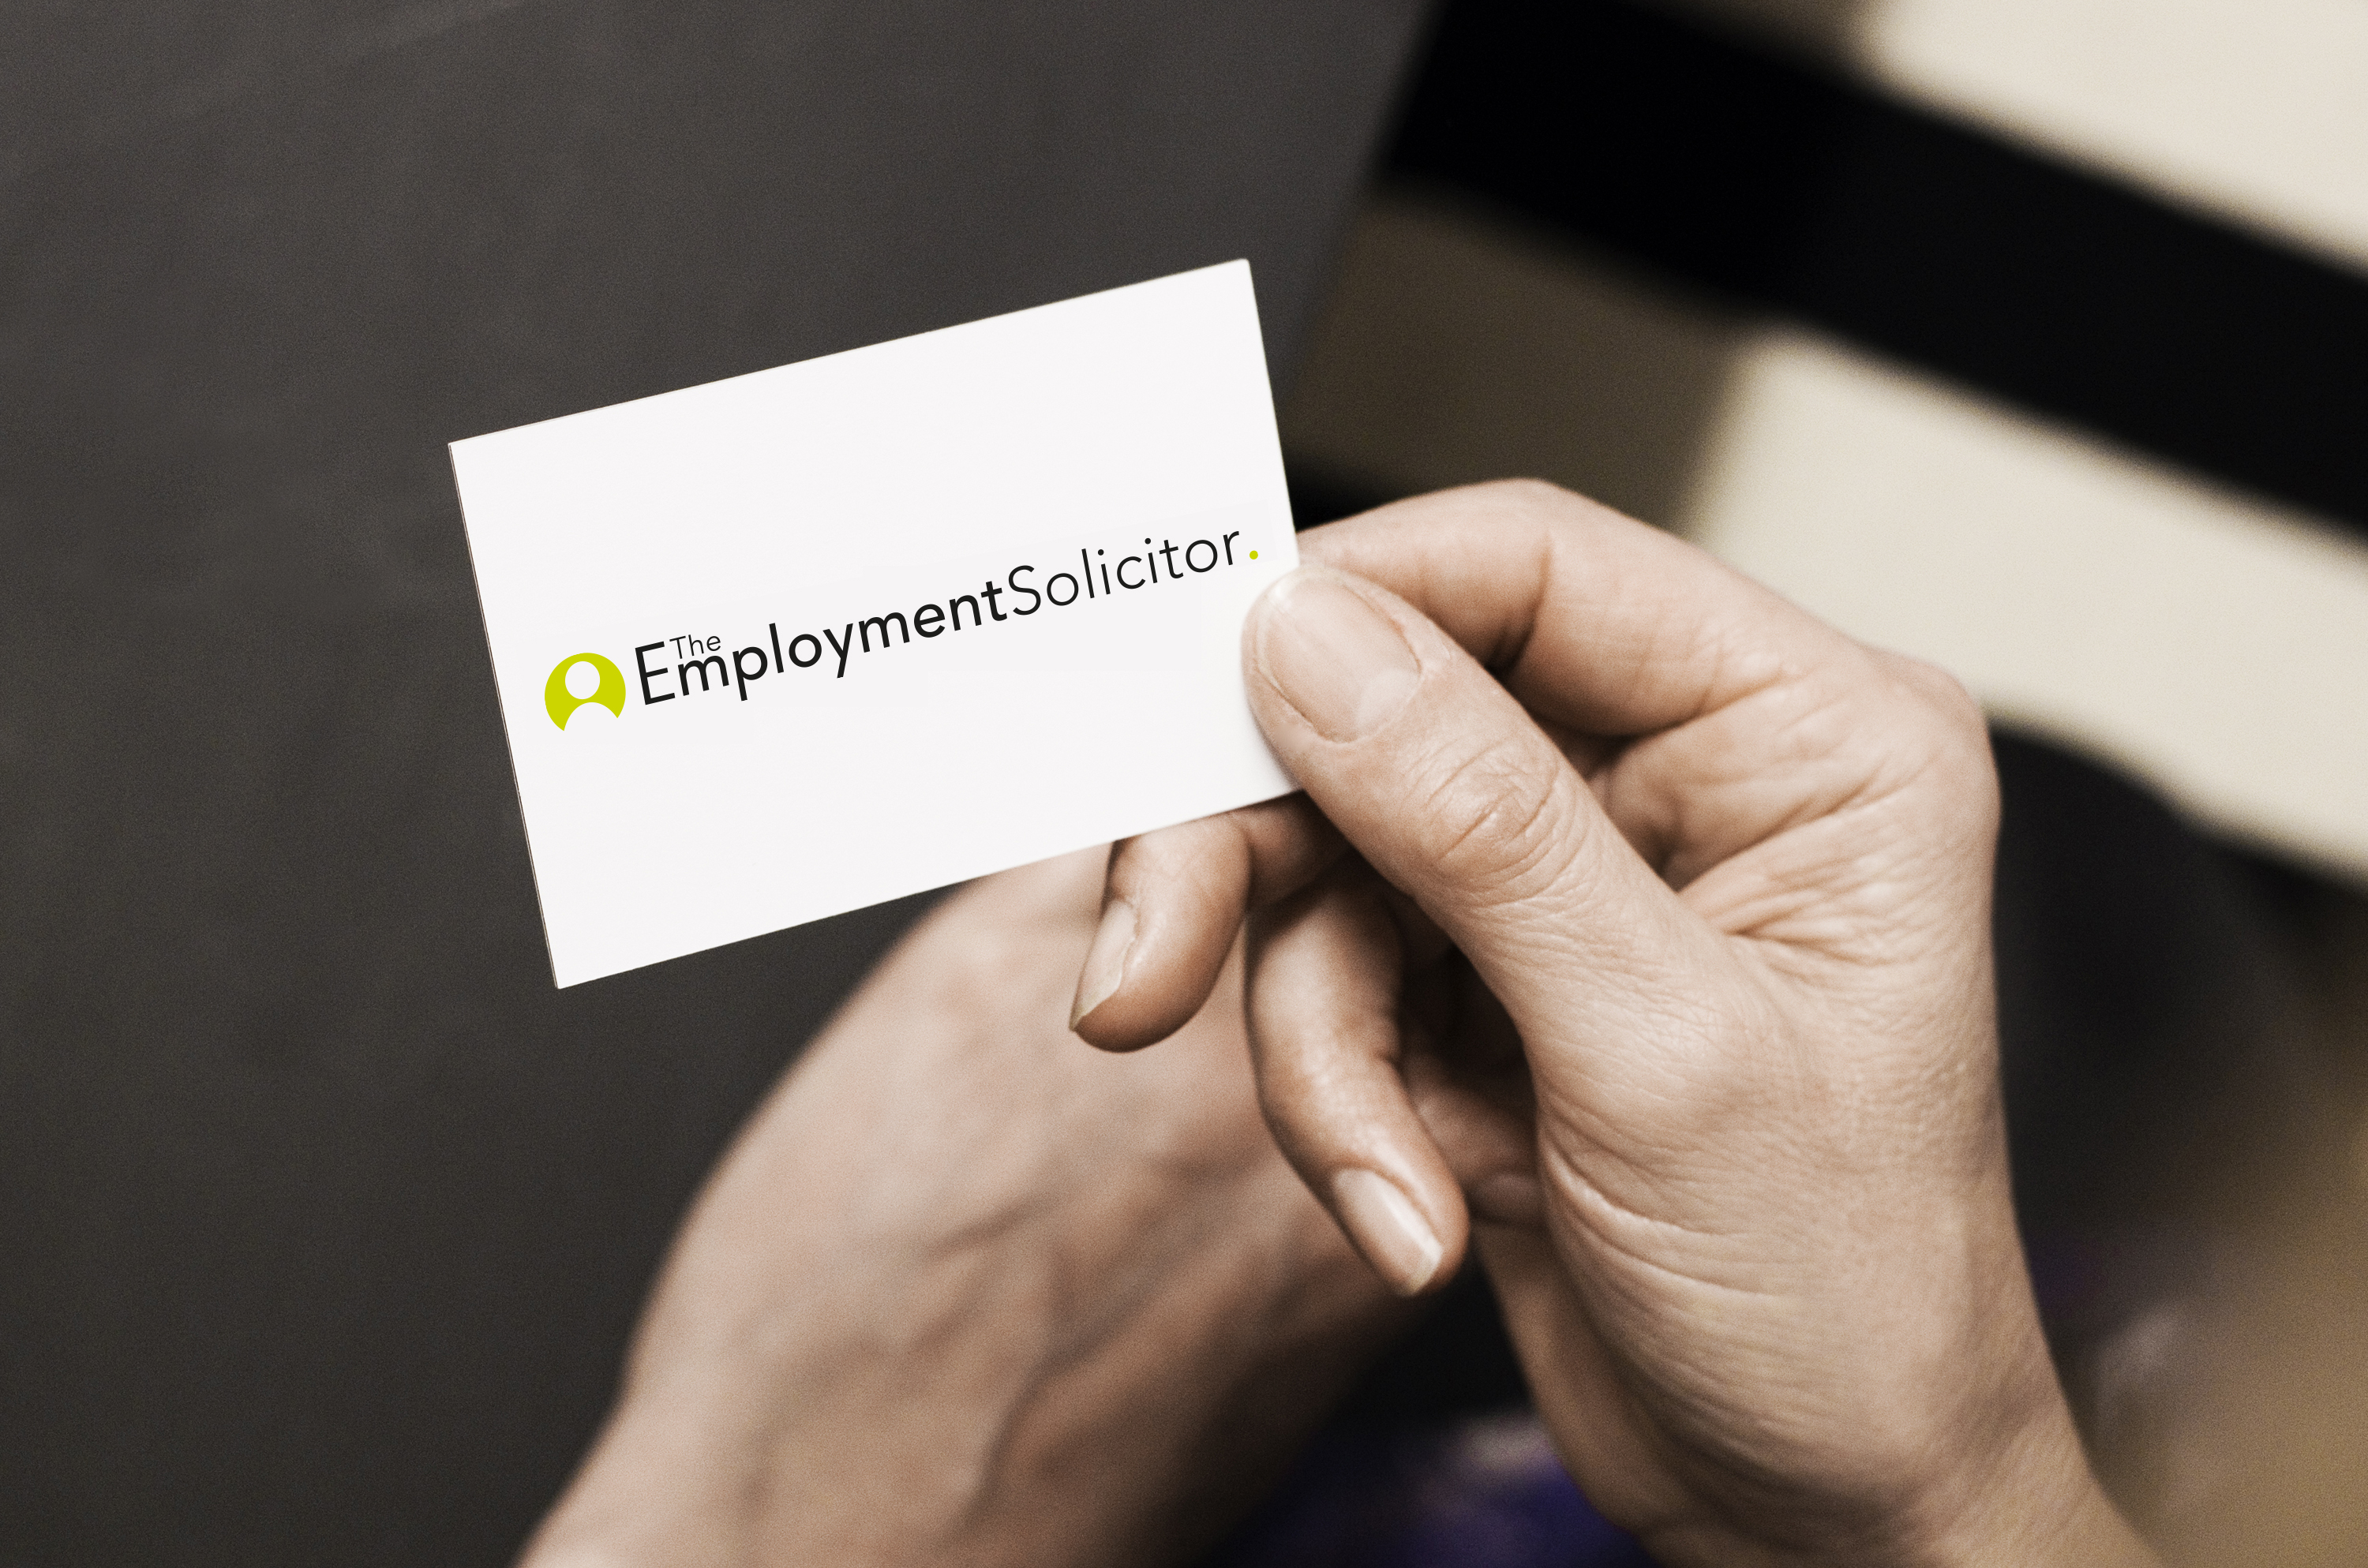 a female hand holding an Employment Solicitor business card